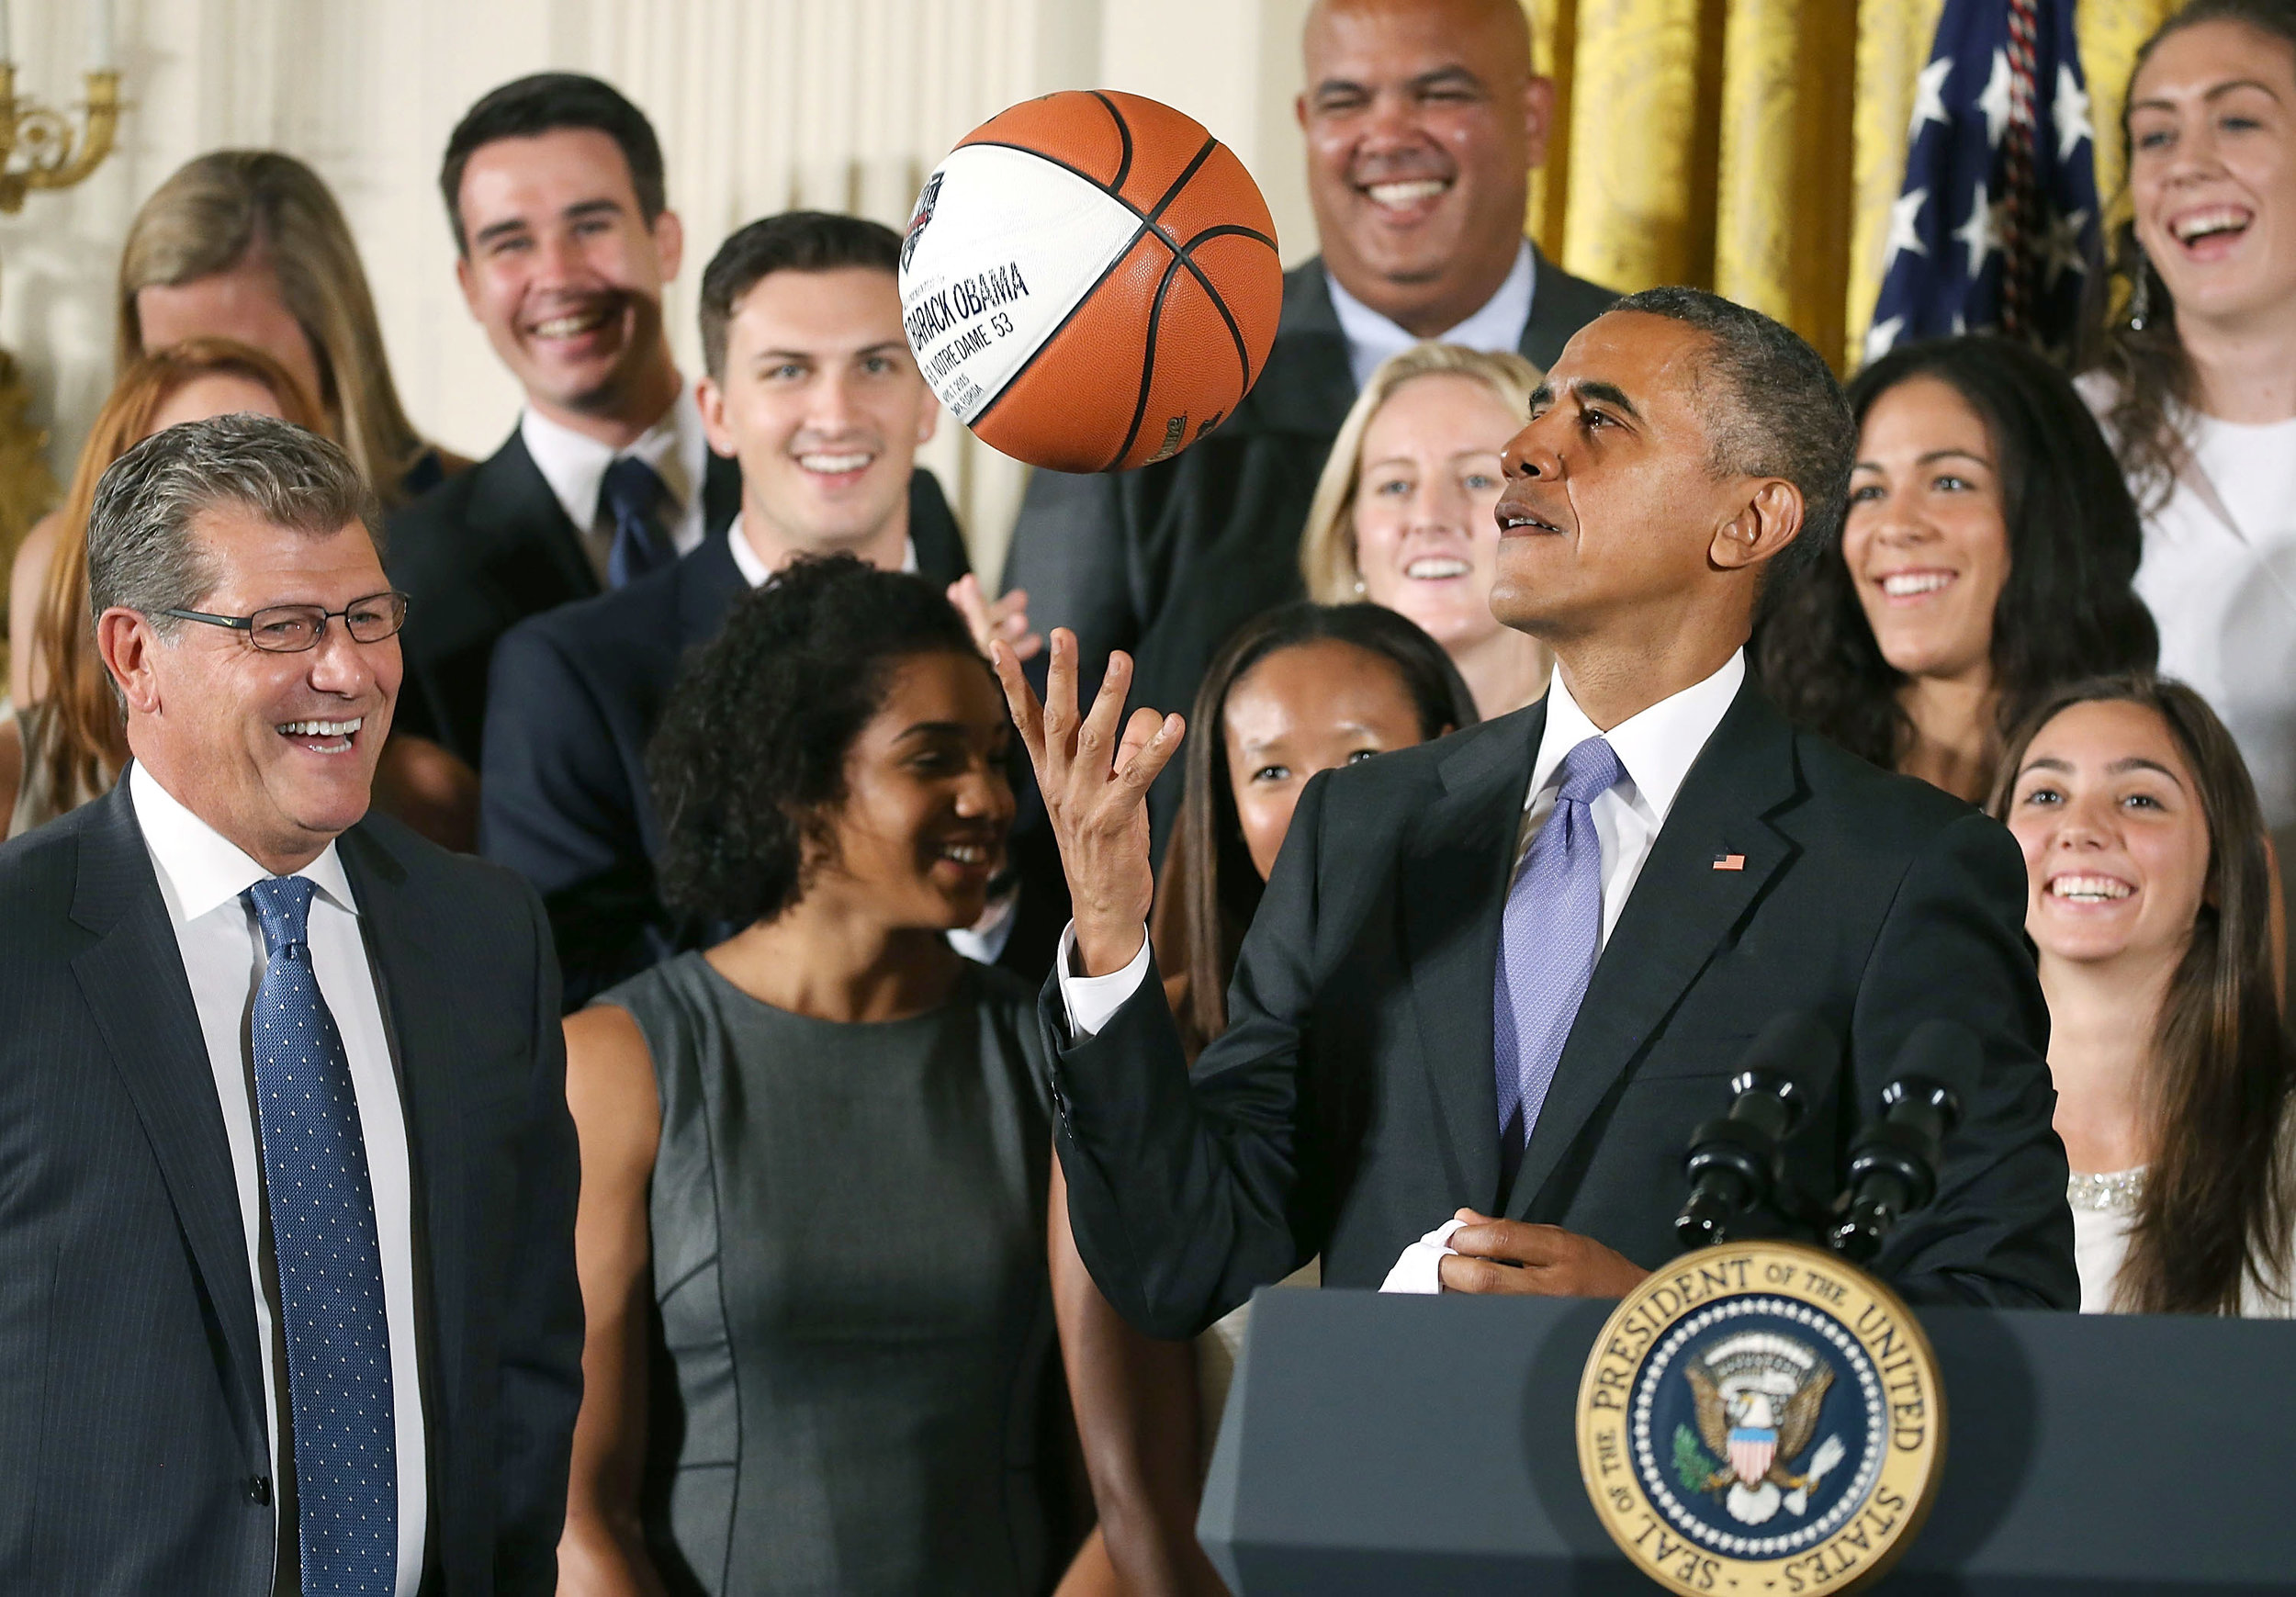 Barack Obama fills out a bracket every year.